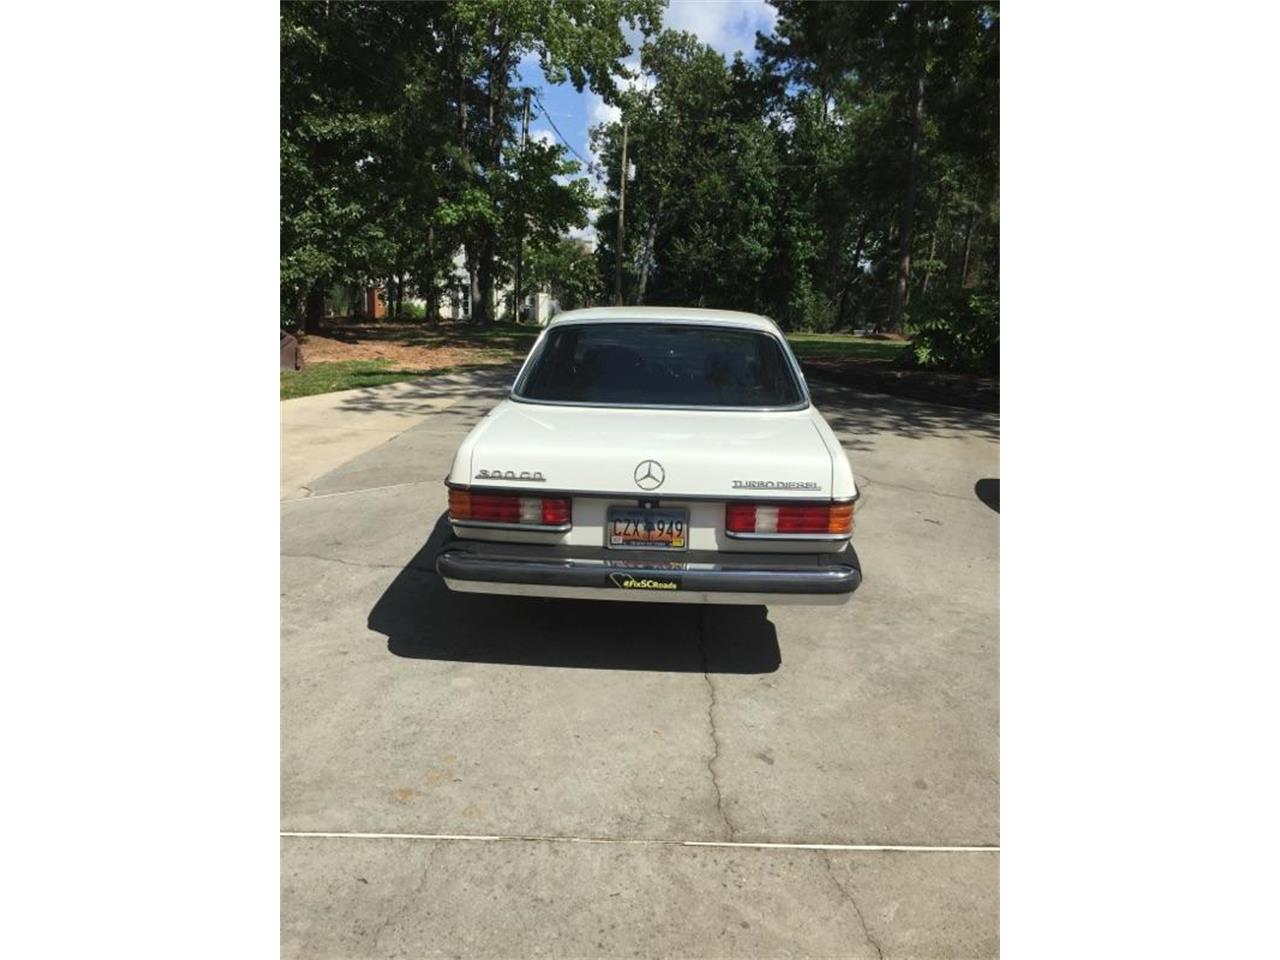 Large Picture of 1984 Mercedes-Benz 300CD located in South Carolina - $6,900.00 Offered by a Private Seller - JBVZ